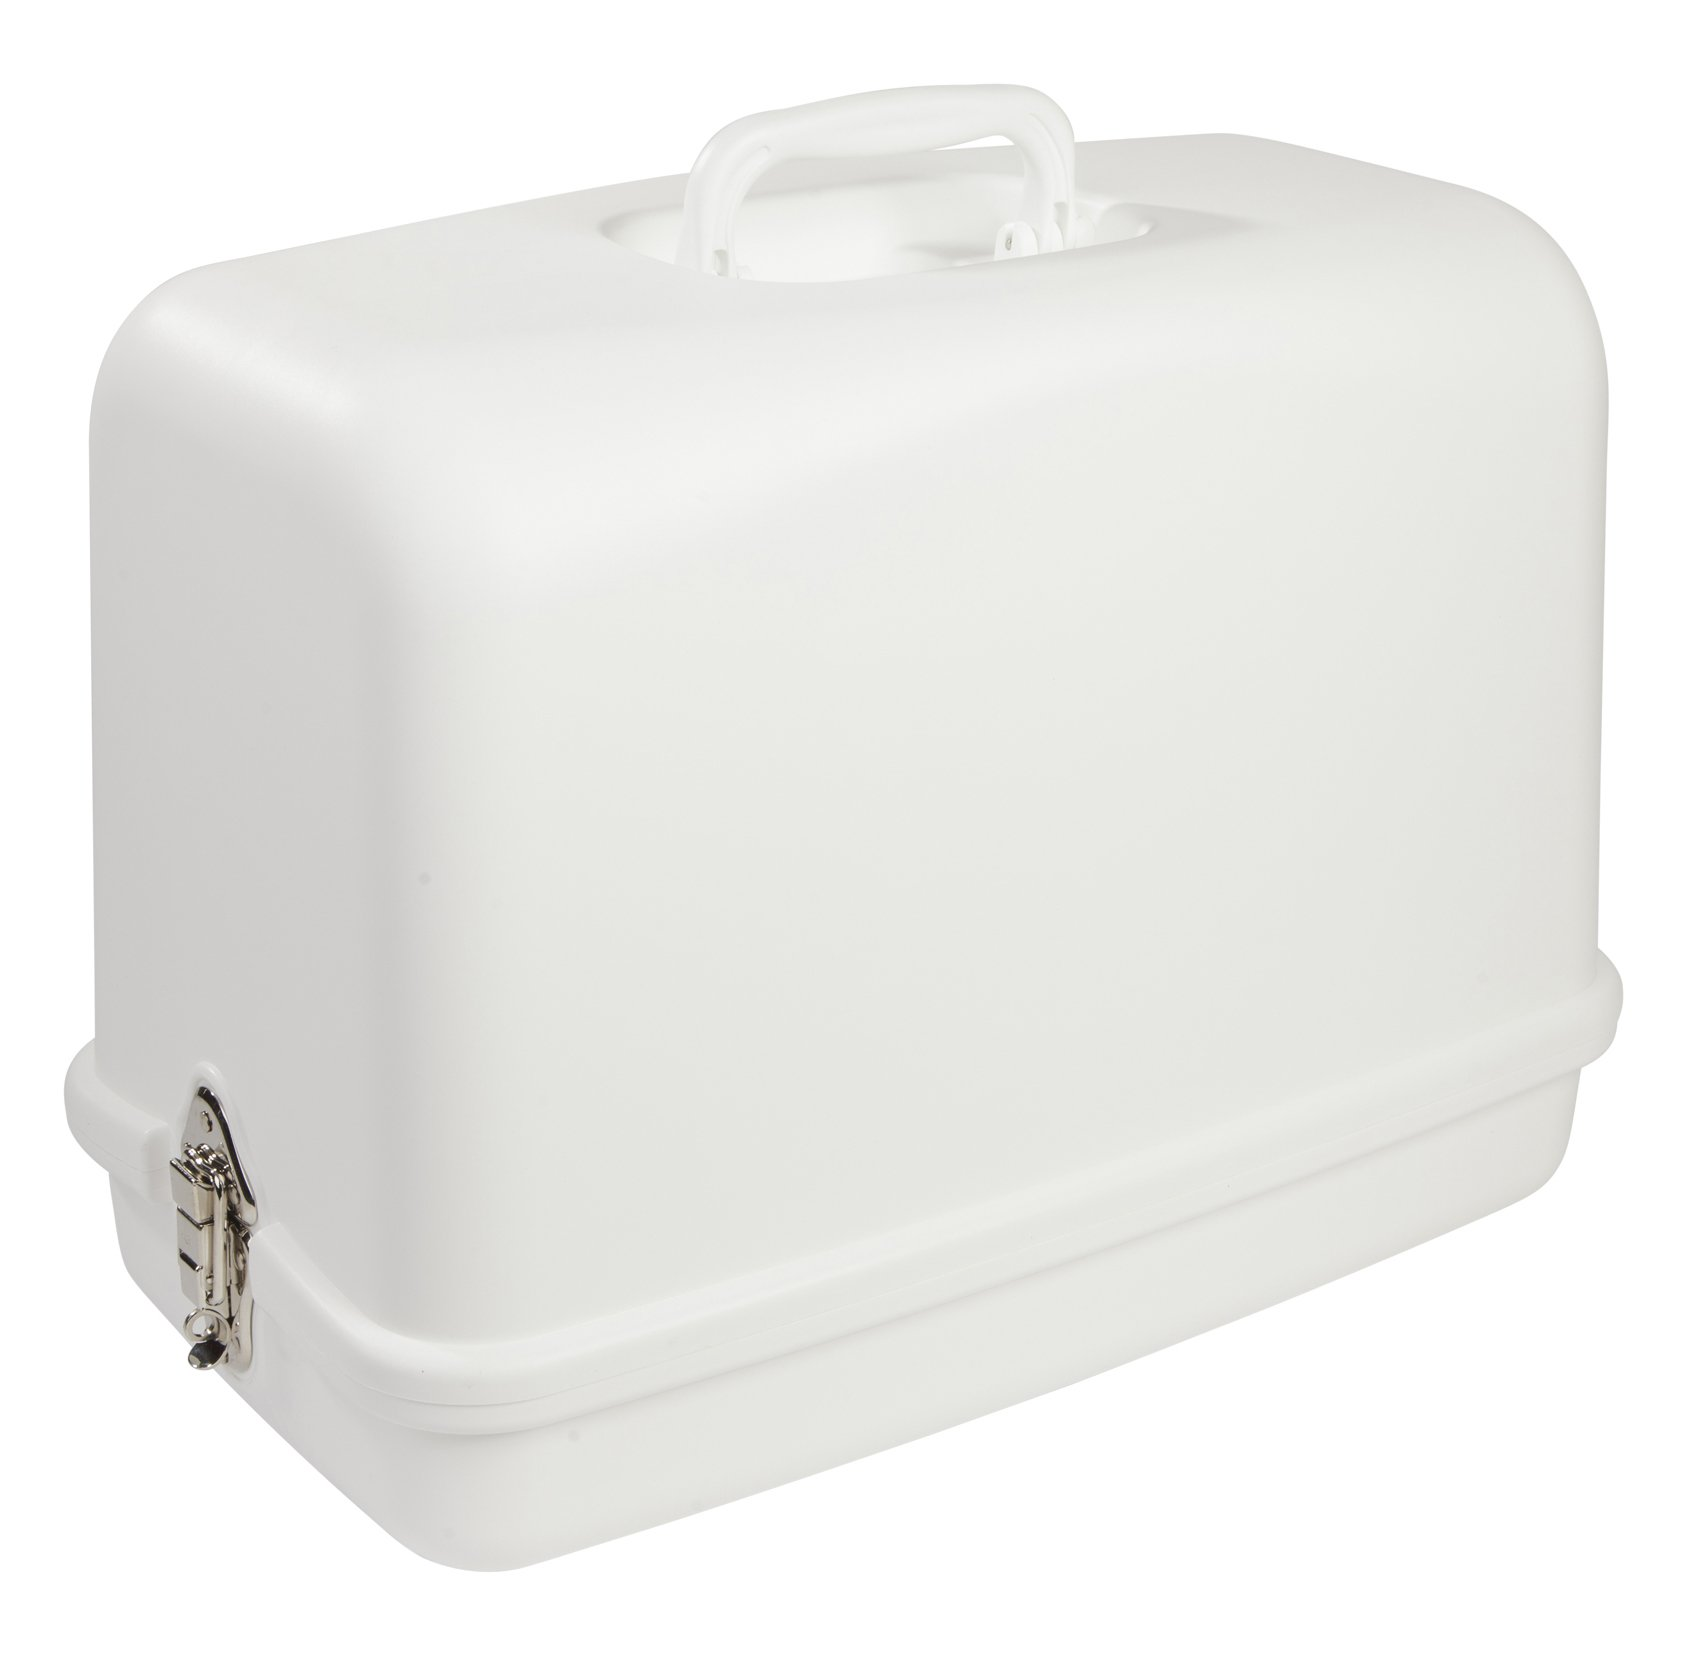 SINGER   Universal Hard Carrying Case 611.BR for Most Free-Arm Portable Sewing Machines